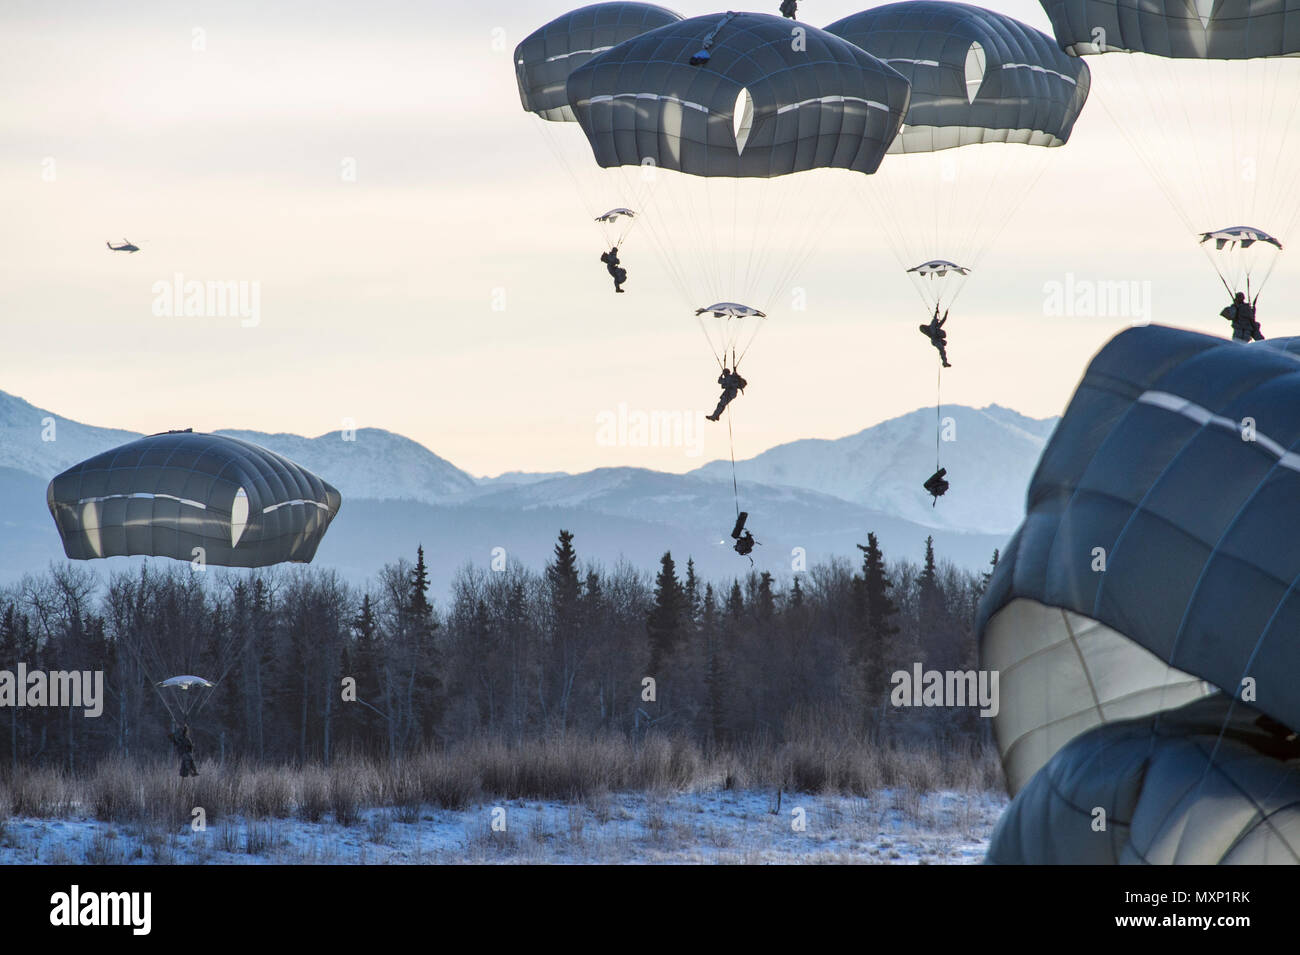 U.S. Army paratroopers, assigned to A Battery, 2nd Battalion, 377th Parachute Field Artillery Regiment, 4th Infantry Brigade Combat Team (Airborne), 25th Infantry Division, U.S. Army Alaska, descend onto Malemute drop zone while conducting airborne and live fire training at Joint Base Elmendorf-Richardson, Alaska, Nov. 22, 2016. Following a heavy equipment drop and parachute assault, the paratroopers honed their skills by setting up and firing a 105 mm howitzer. The Soldiers of 4/25 IBCT belong to the only American airborne brigade in the Pacific and are trained to execute airborne maneuvers i - Stock Image